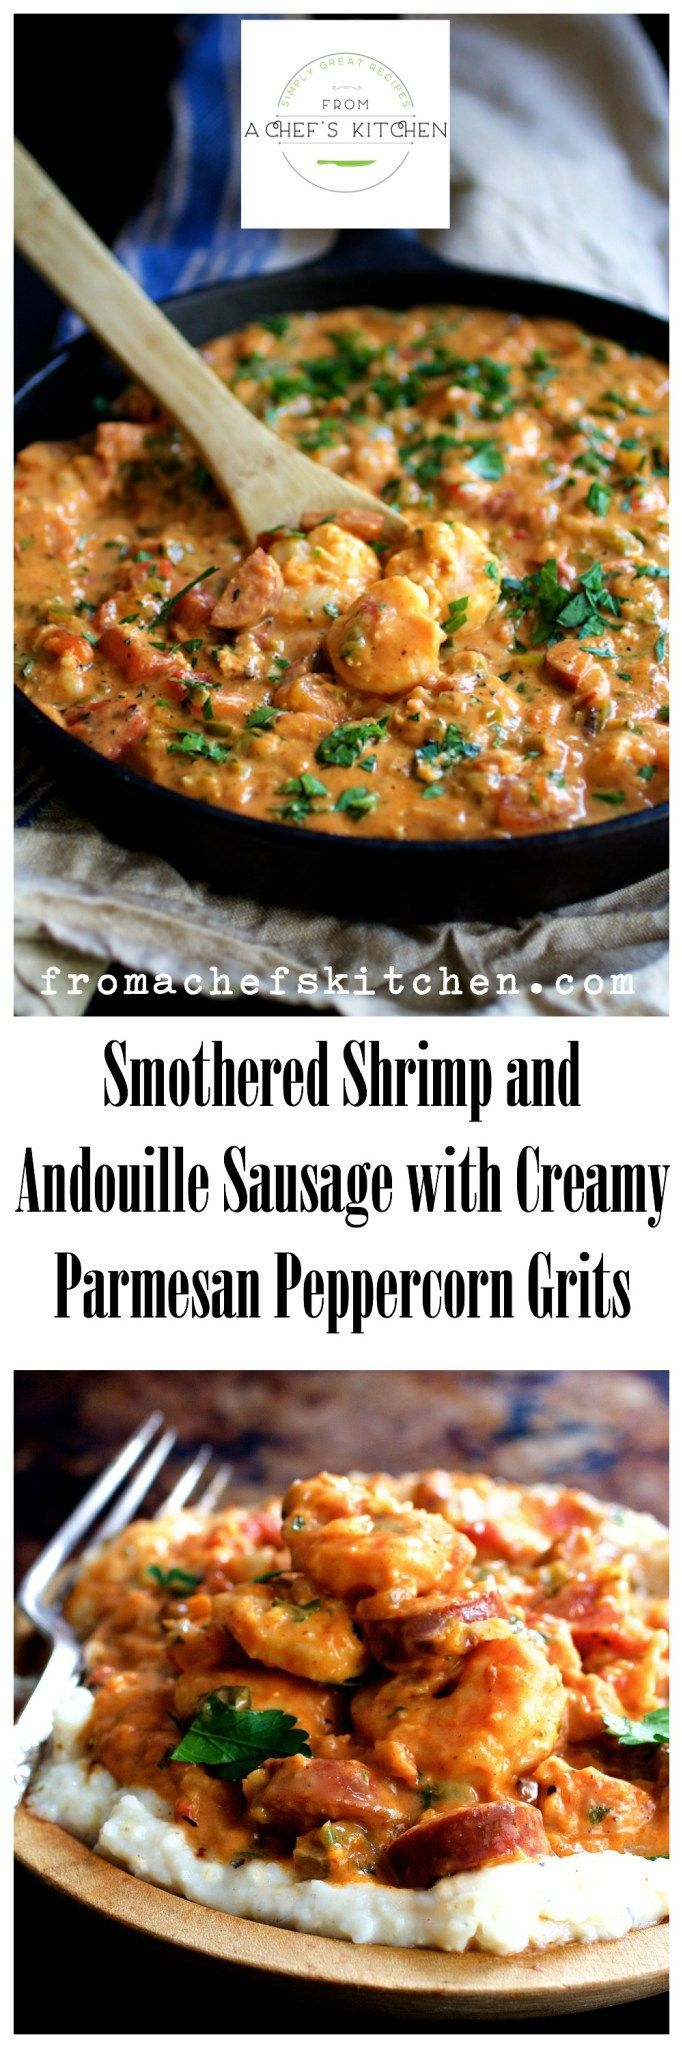 New Orleans Smothered Shrimp and Andouille Sausage with Creamy Parmesan Peppercorn Grits - Rich and decadent!